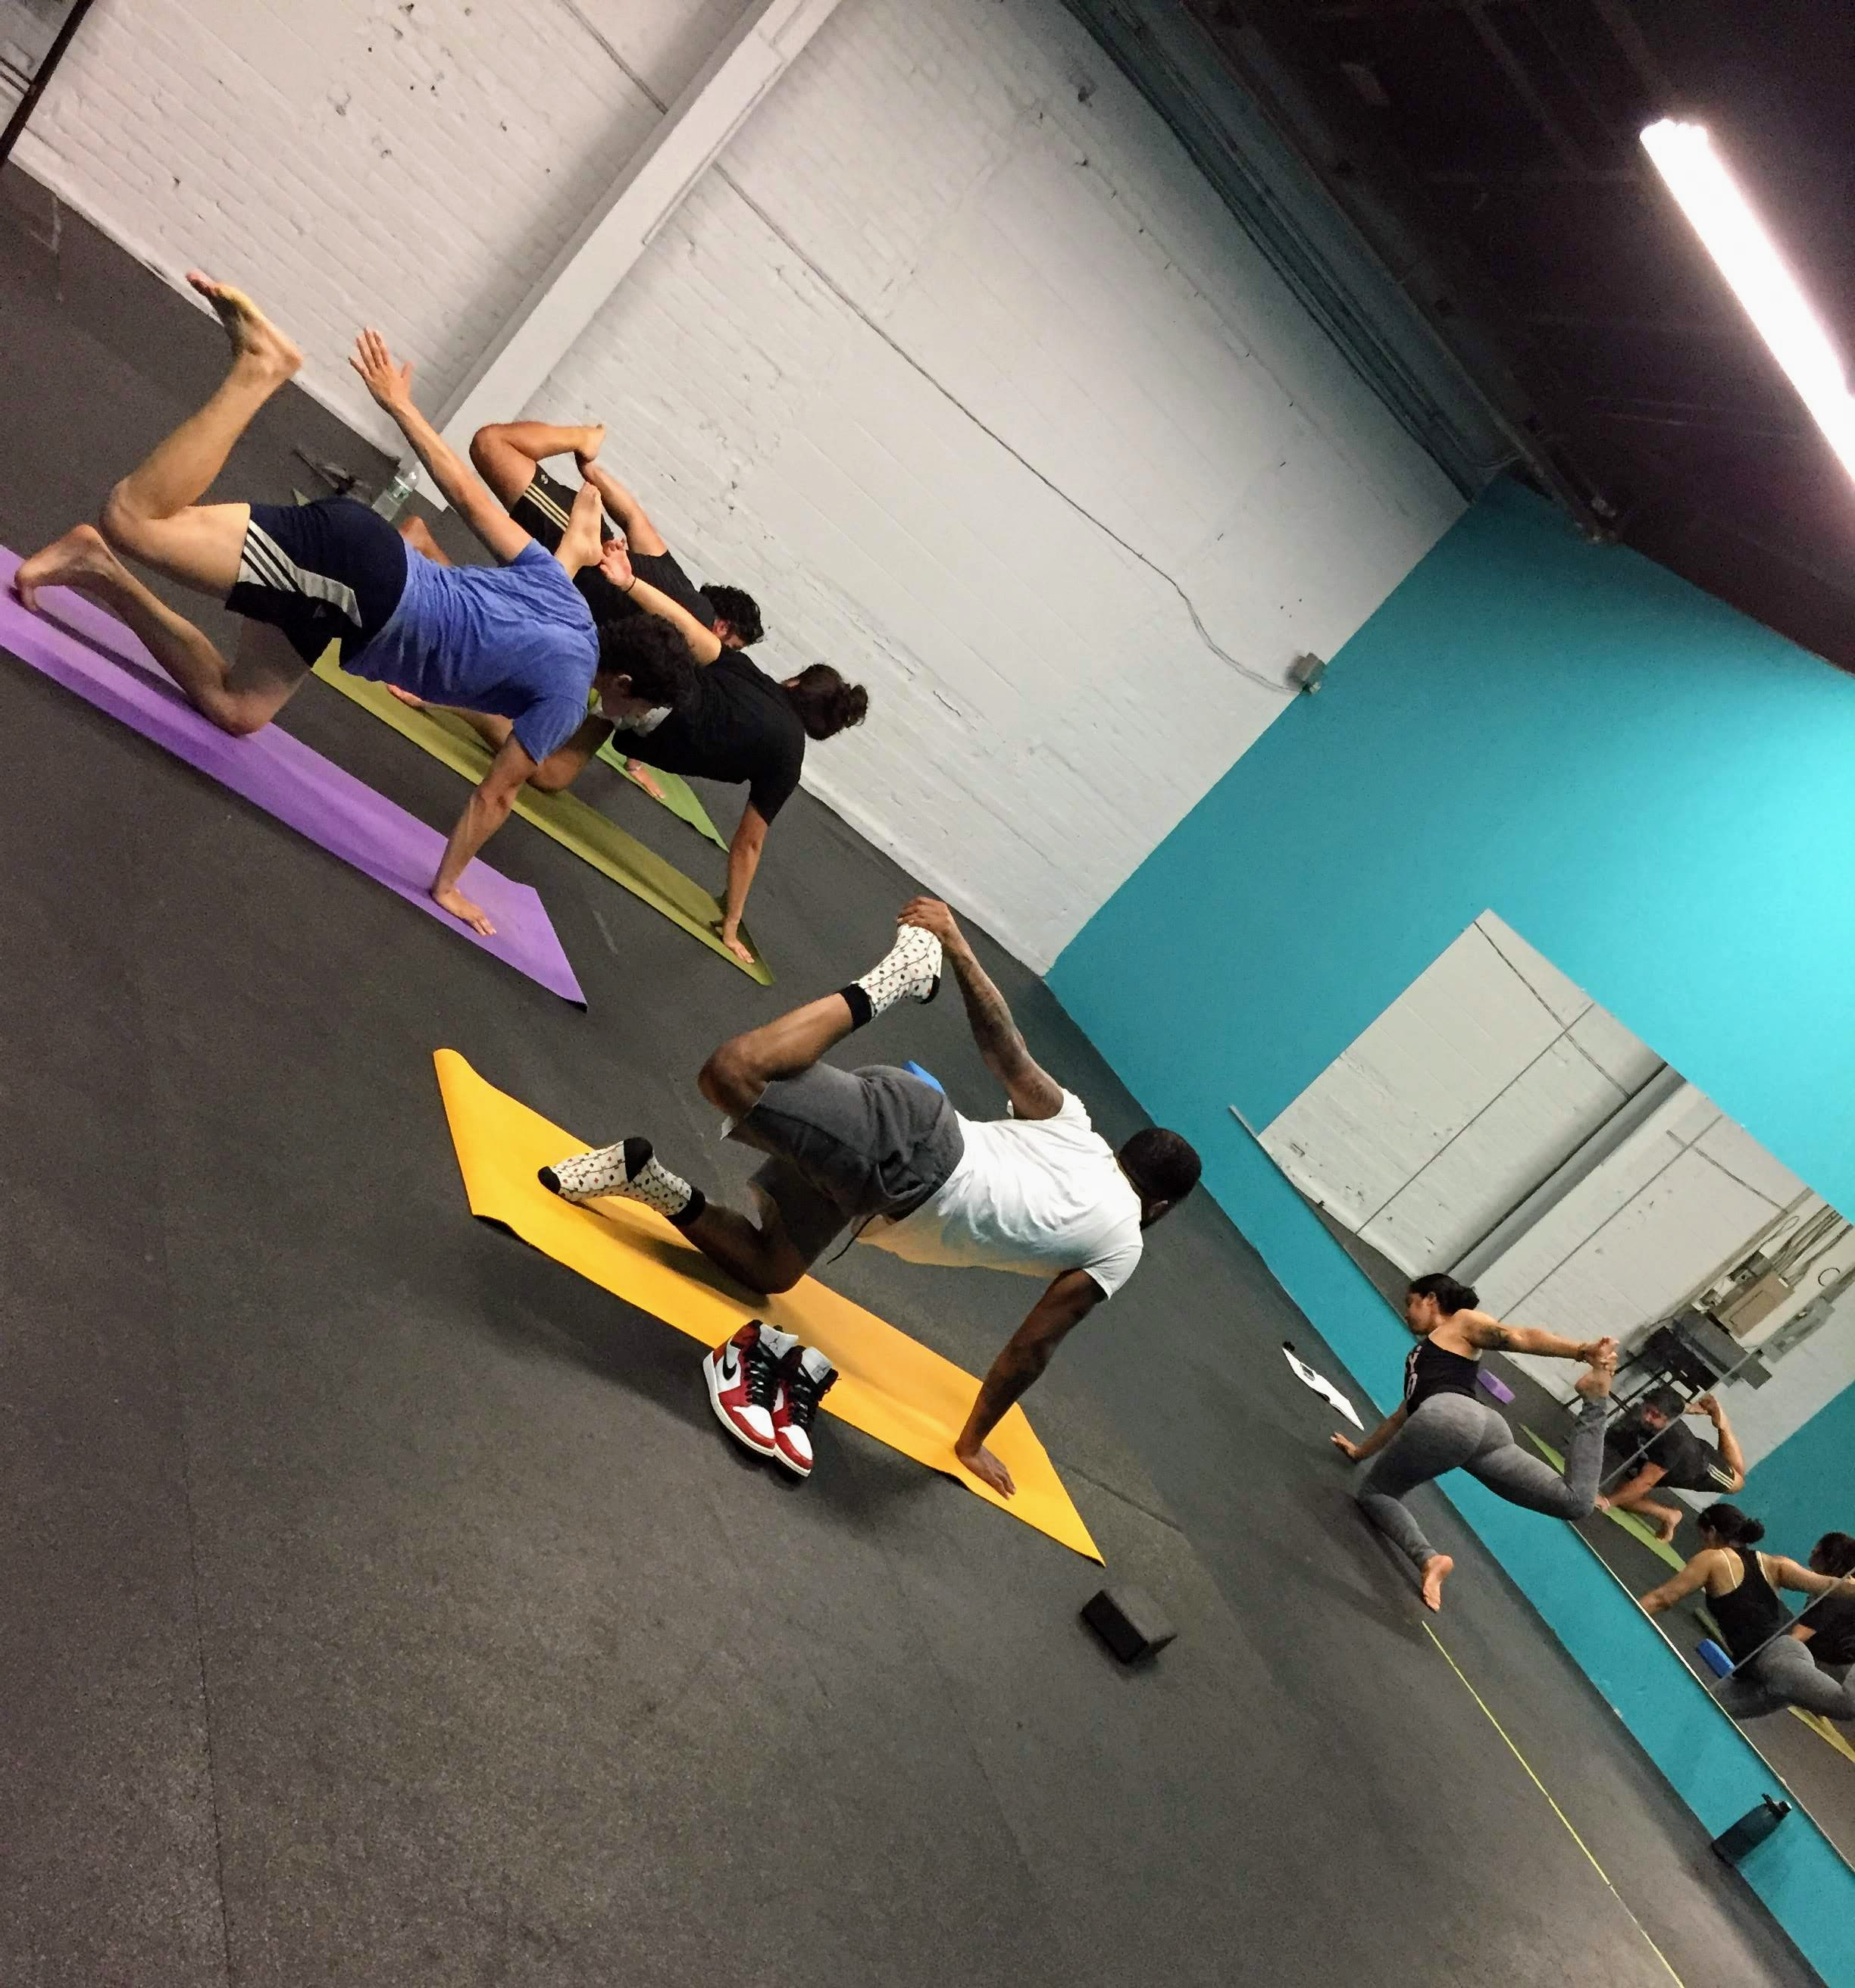 Have you checked out Xan's free Community Yoga class on Sundays at 9:00am?  Check the white board for details and get your flex(ibility) on!